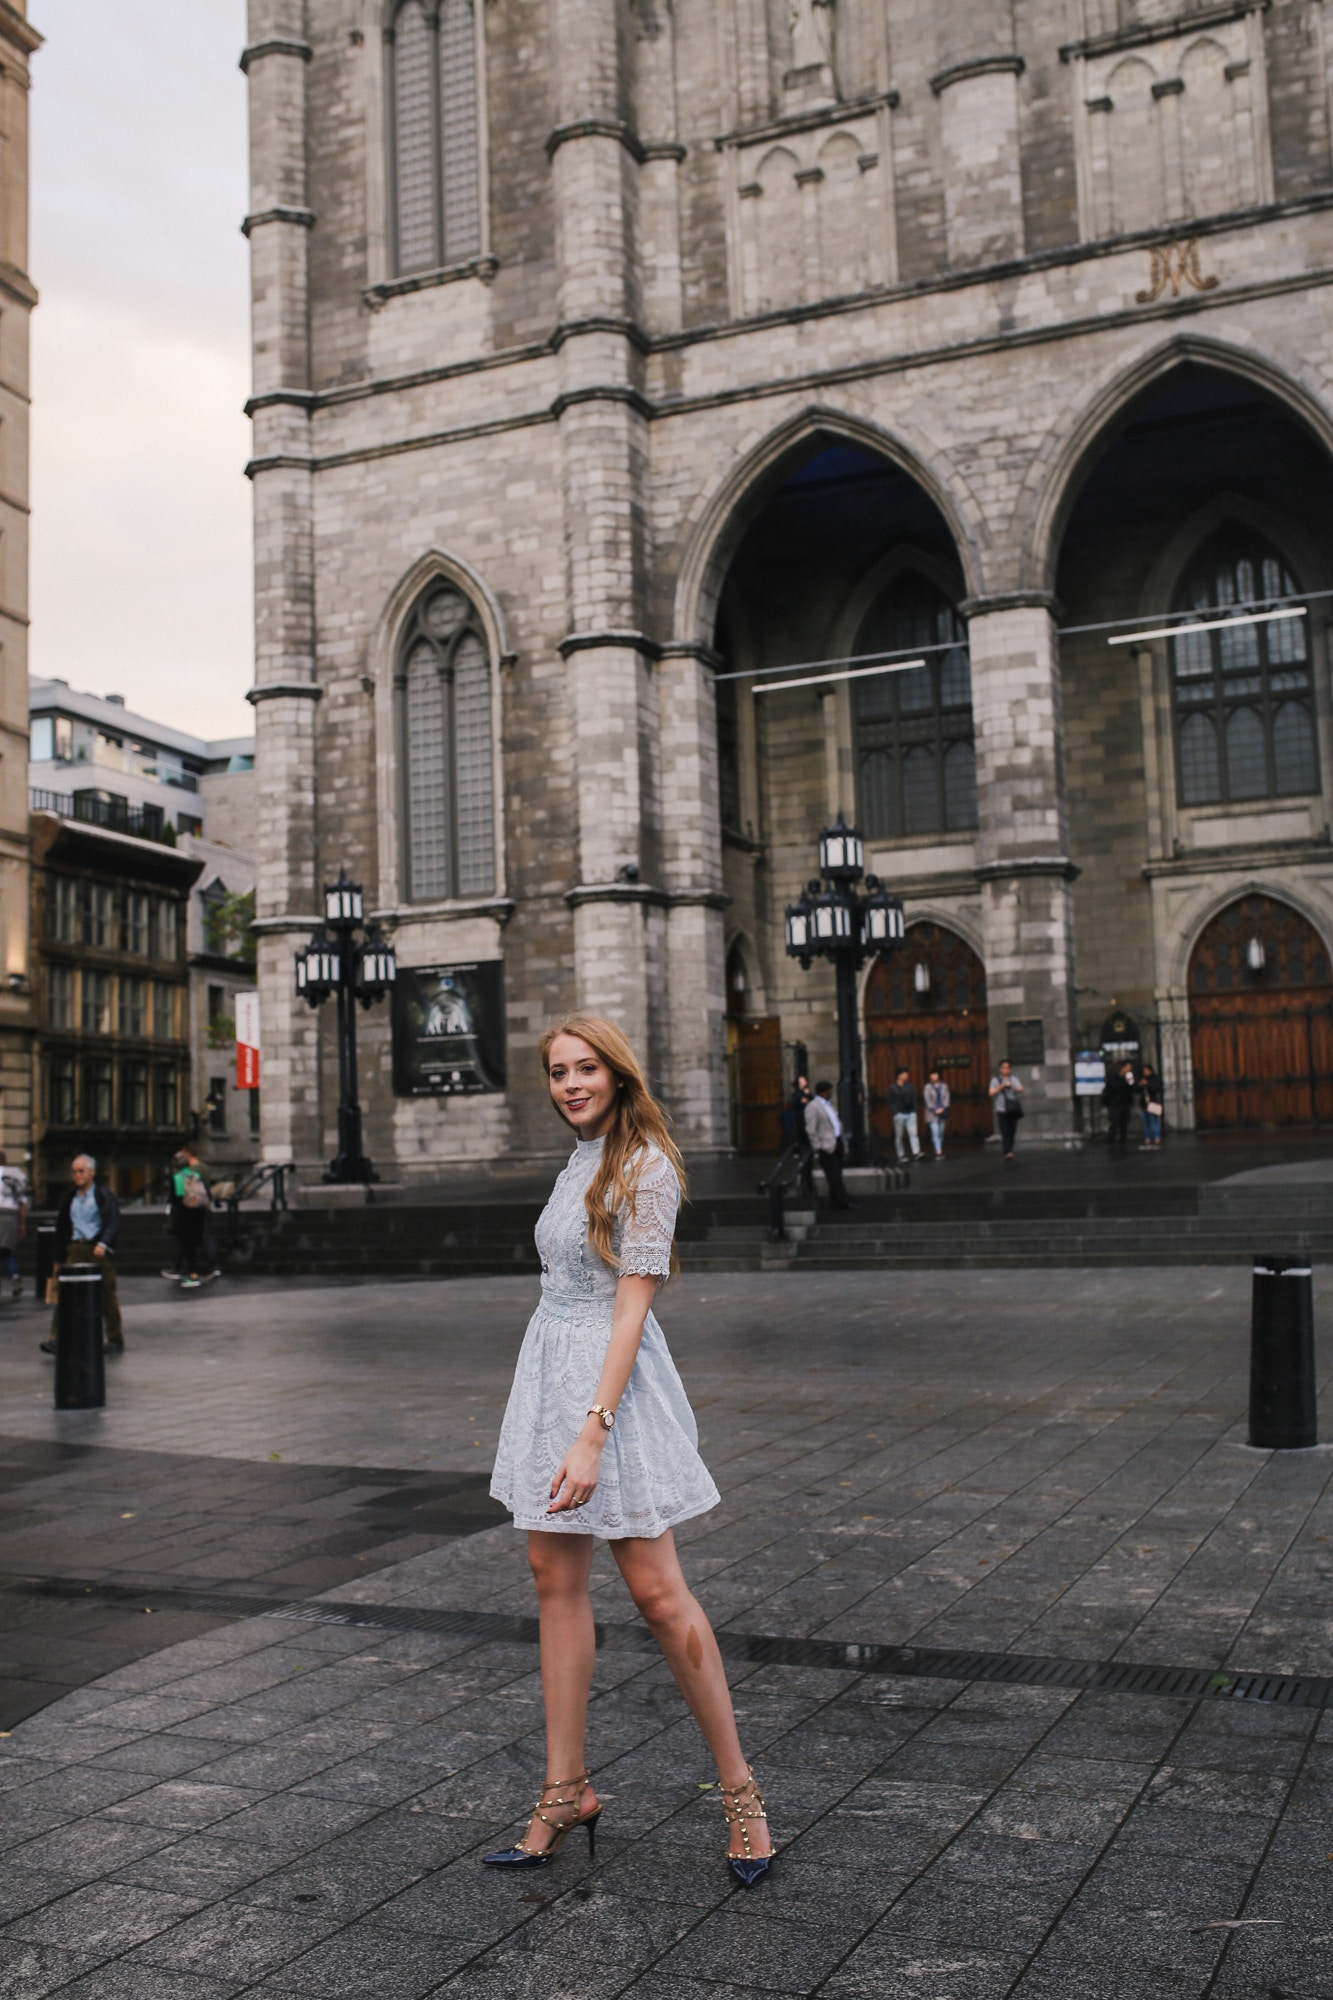 Notre Dame de Montréal is one of my favourite spots to visit in Montreal, and easily one of the most Instagrammable, photogenic locations in Vieux Port